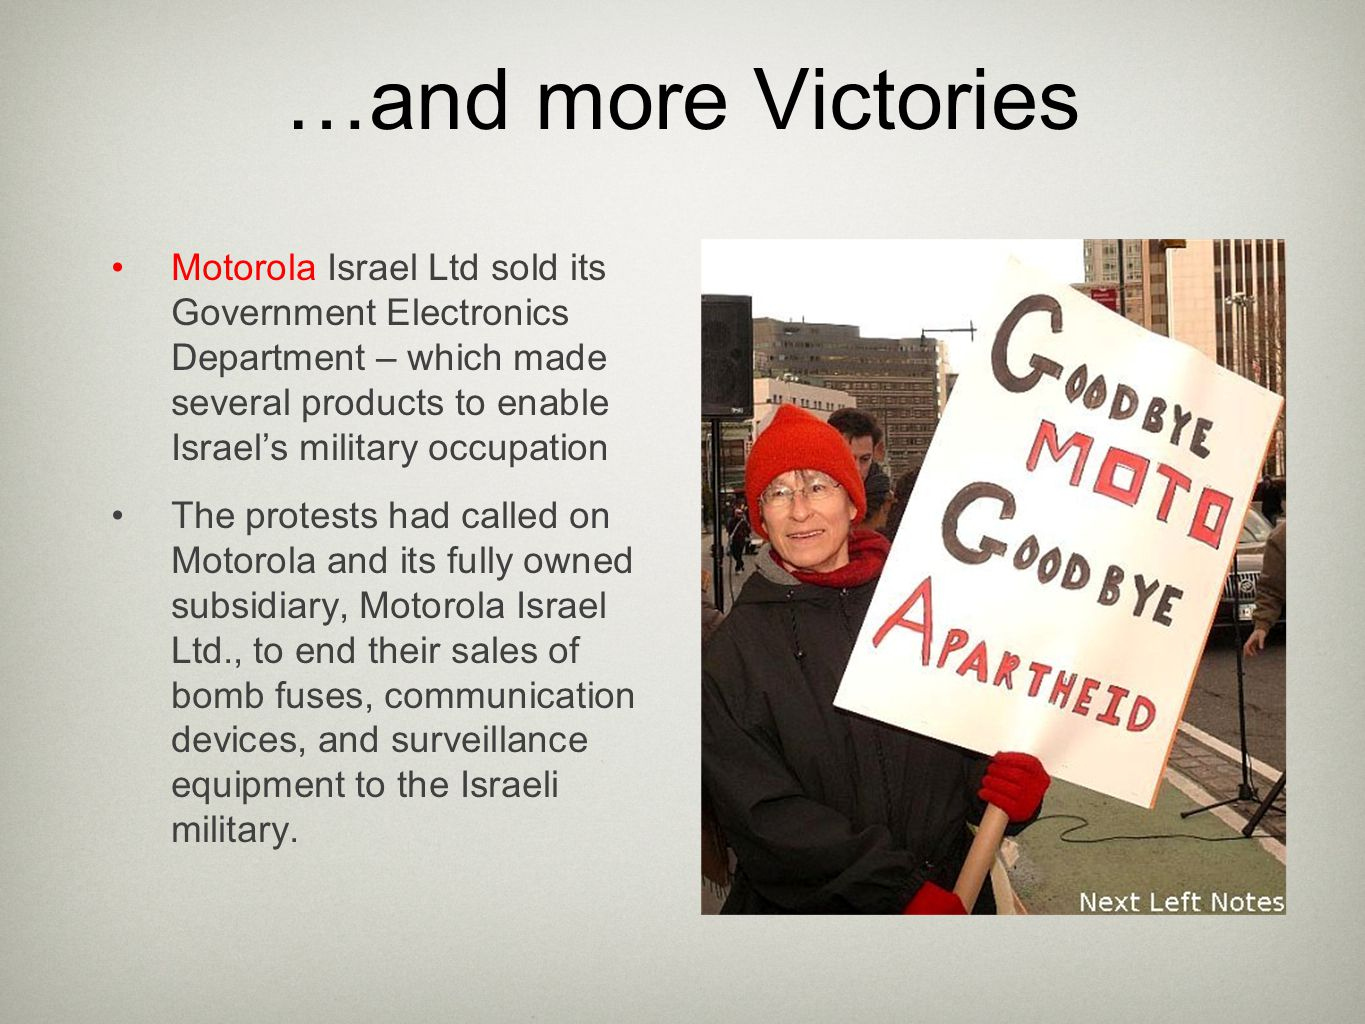 …and more Victories Motorola Israel Ltd sold its Government Electronics Department – which made several products to enable Israel's military occupation The protests had called on Motorola and its fully owned subsidiary, Motorola Israel Ltd., to end their sales of bomb fuses, communication devices, and surveillance equipment to the Israeli military.